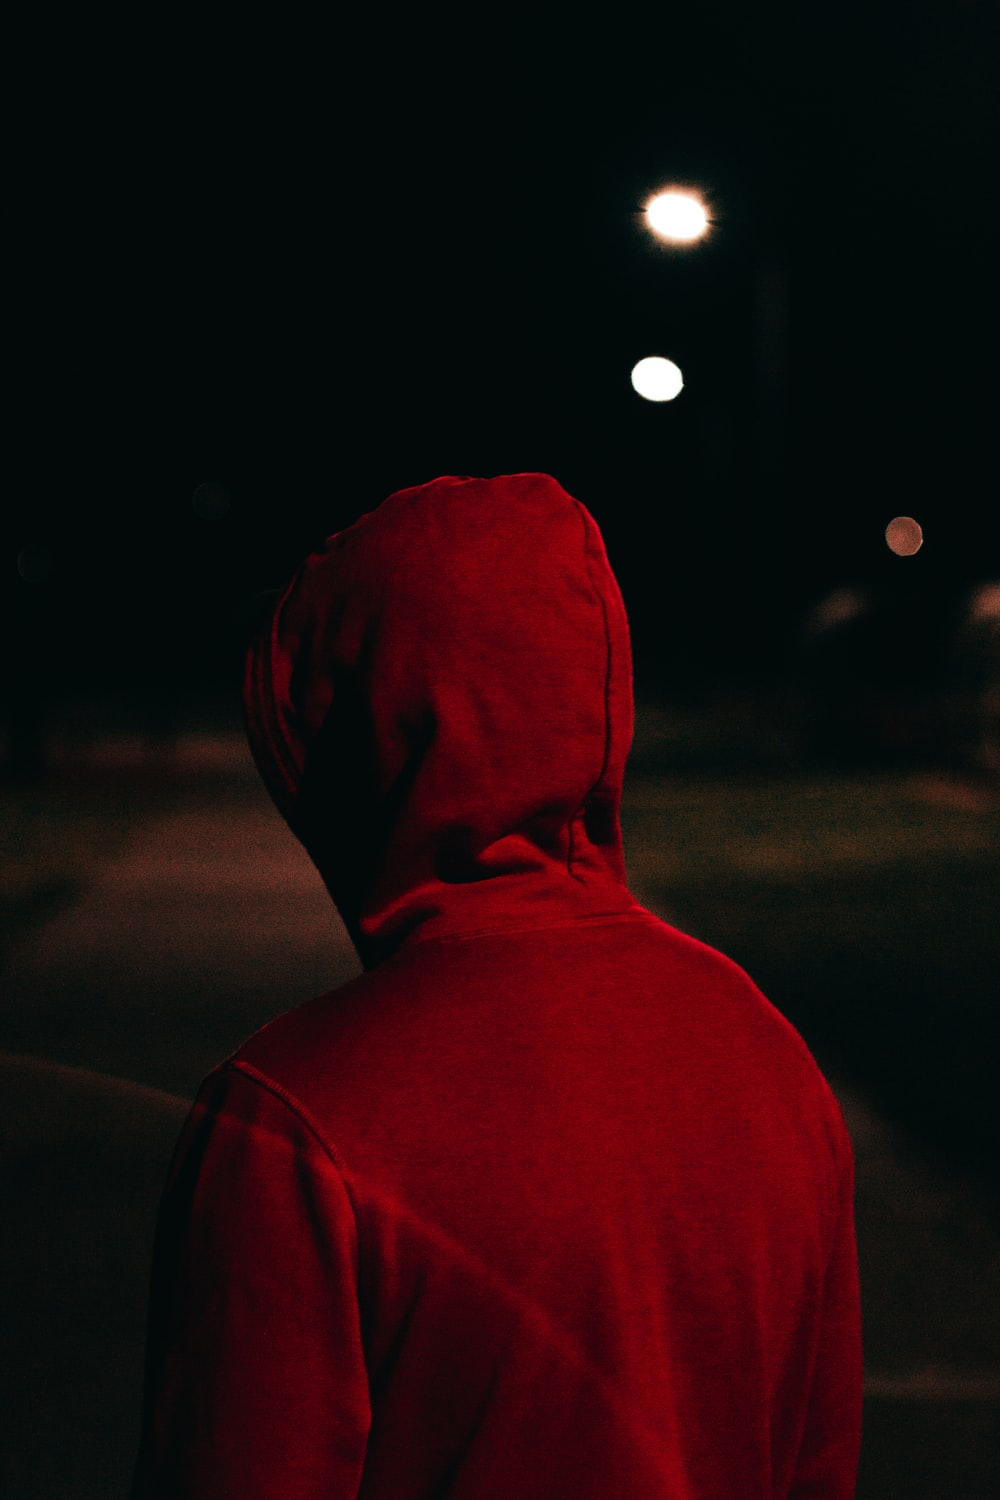 person in red hoodie